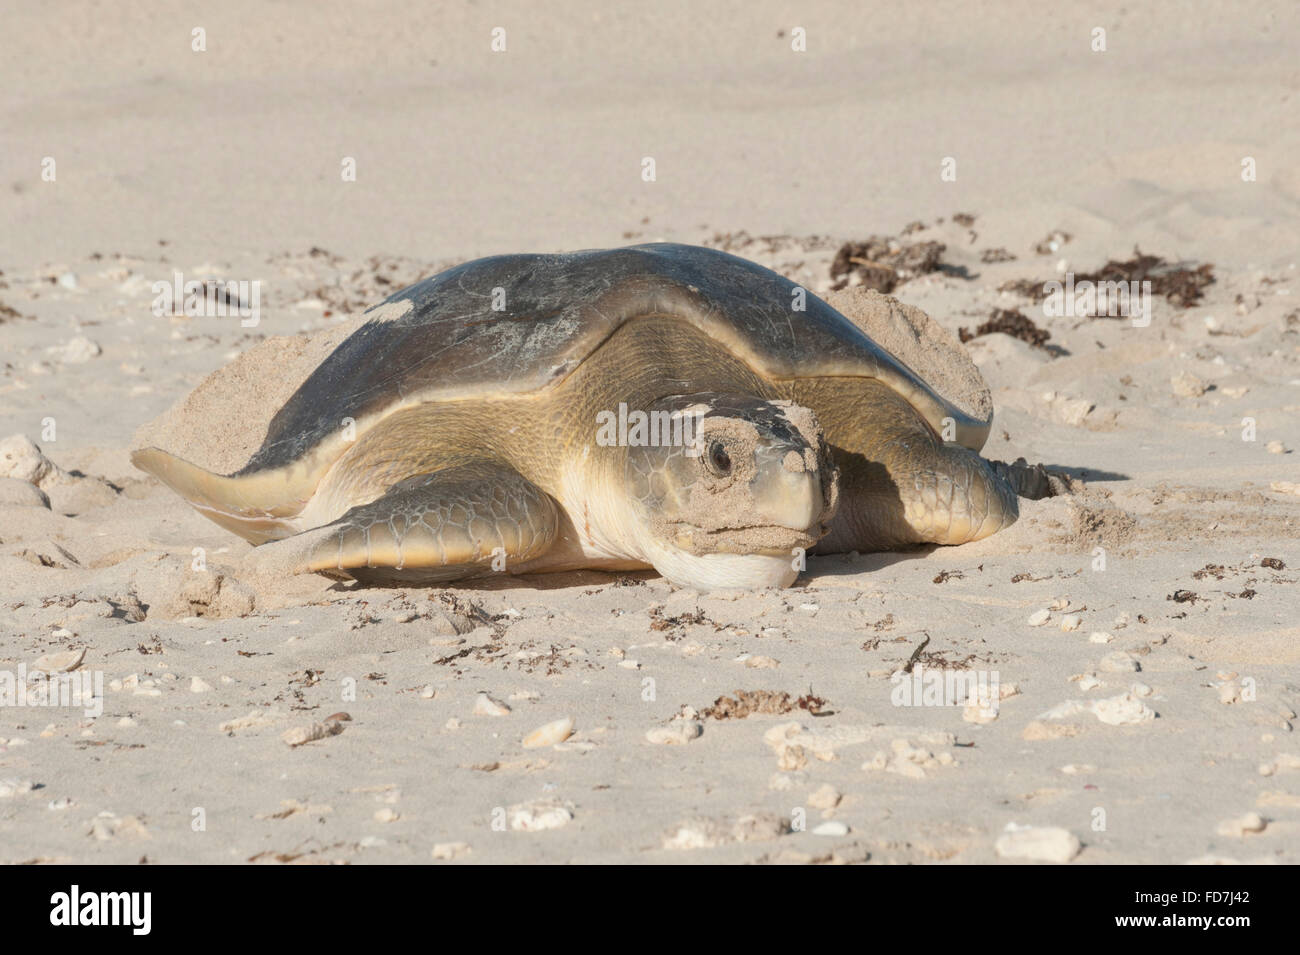 Australian flatback sea turtle (Natator depressus), endemic, female returning to sea after nesting, Western Australia - Stock Image